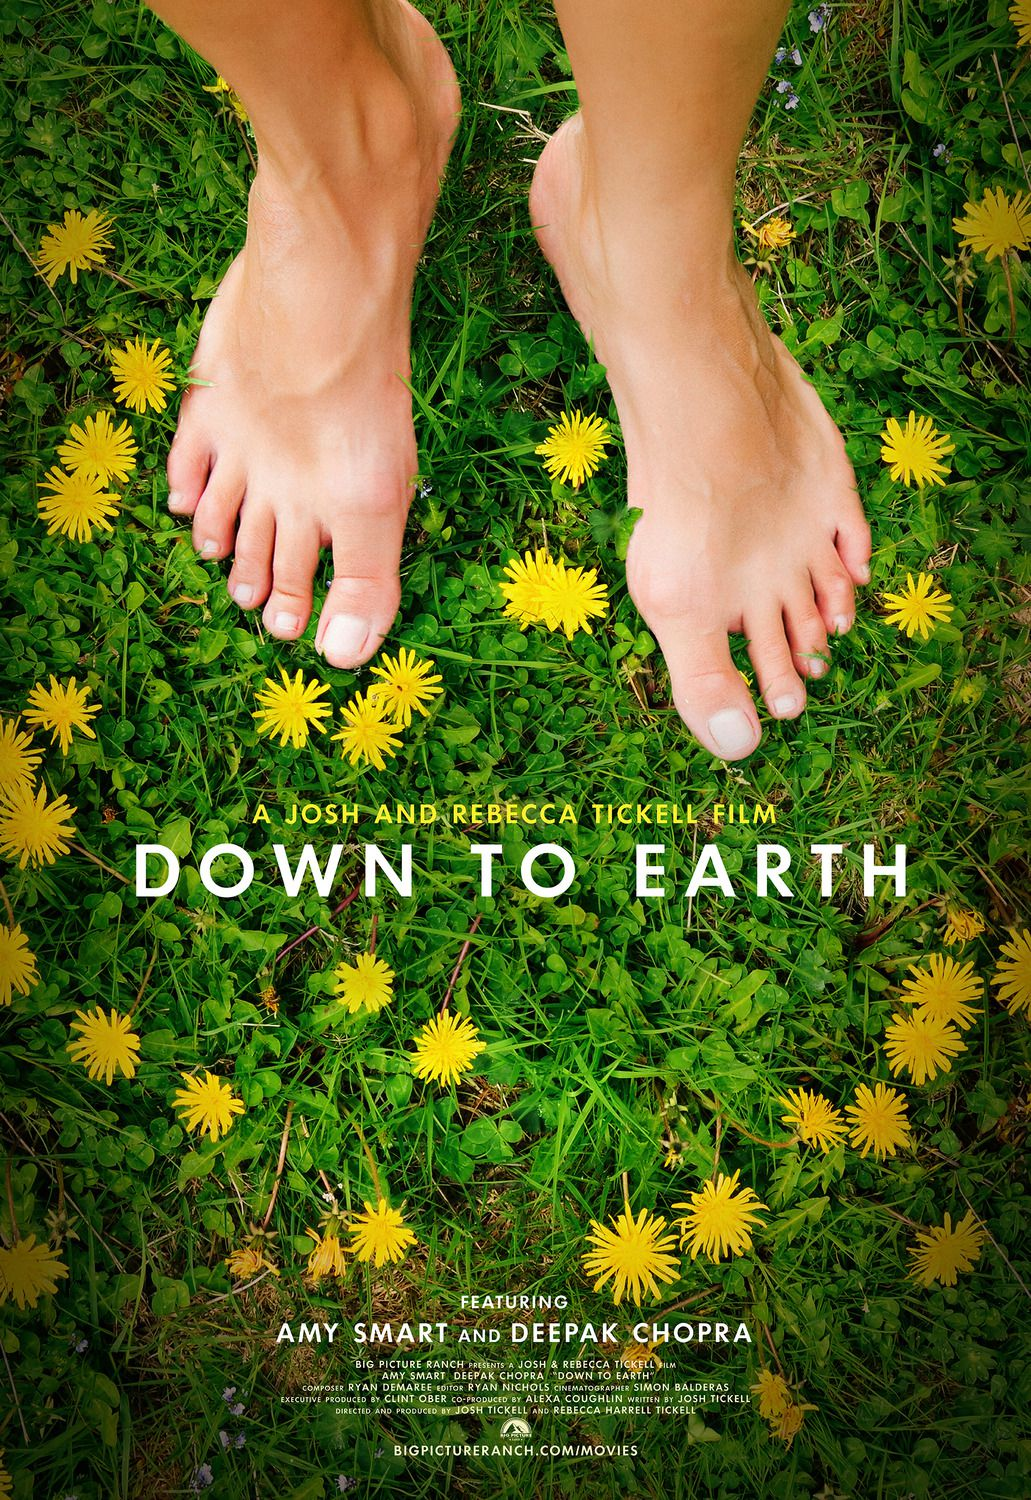 Down to Earth (2019)